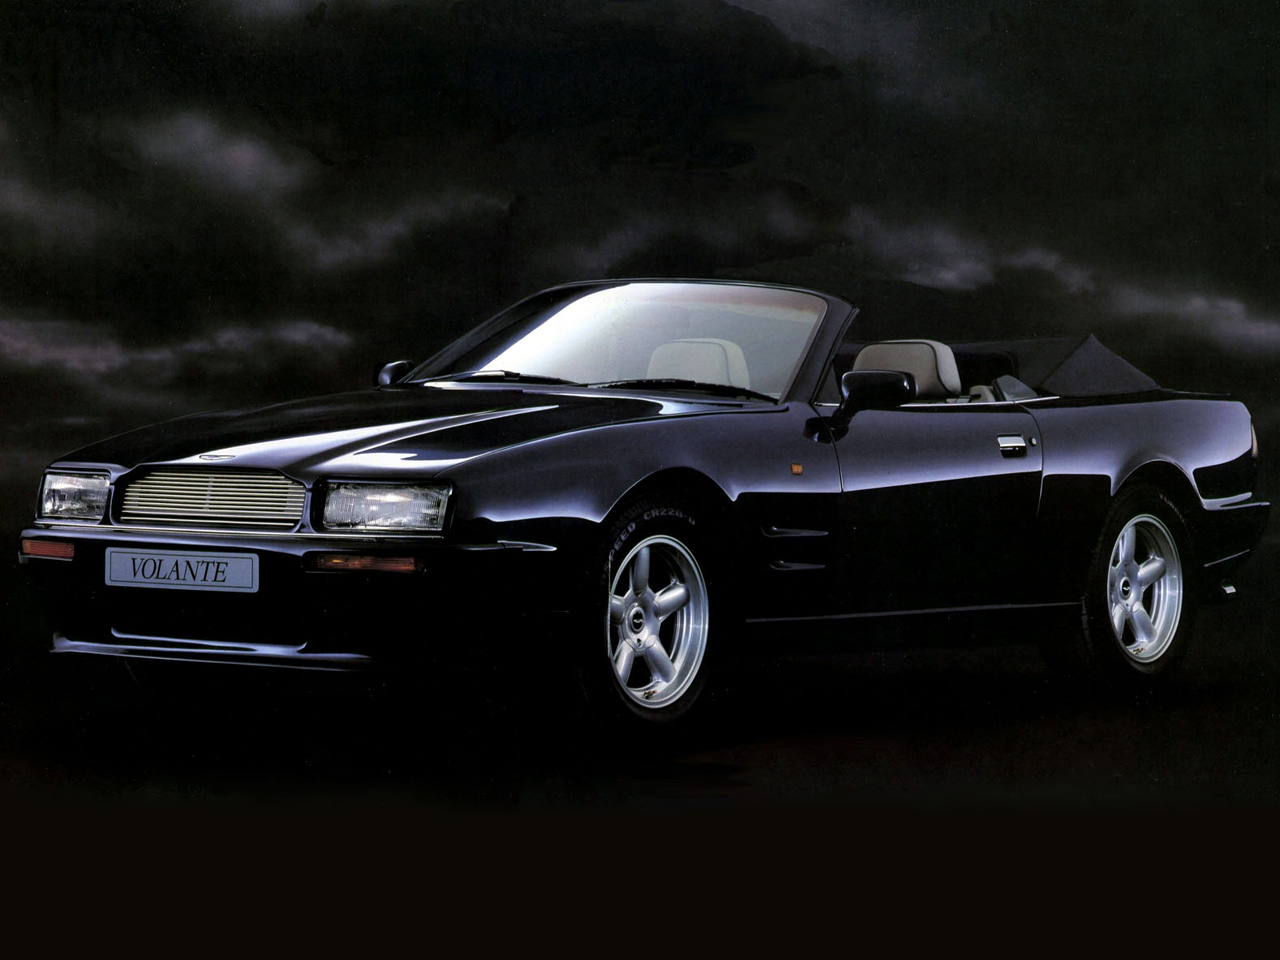 aston martin virage volante 1992 wallpaper